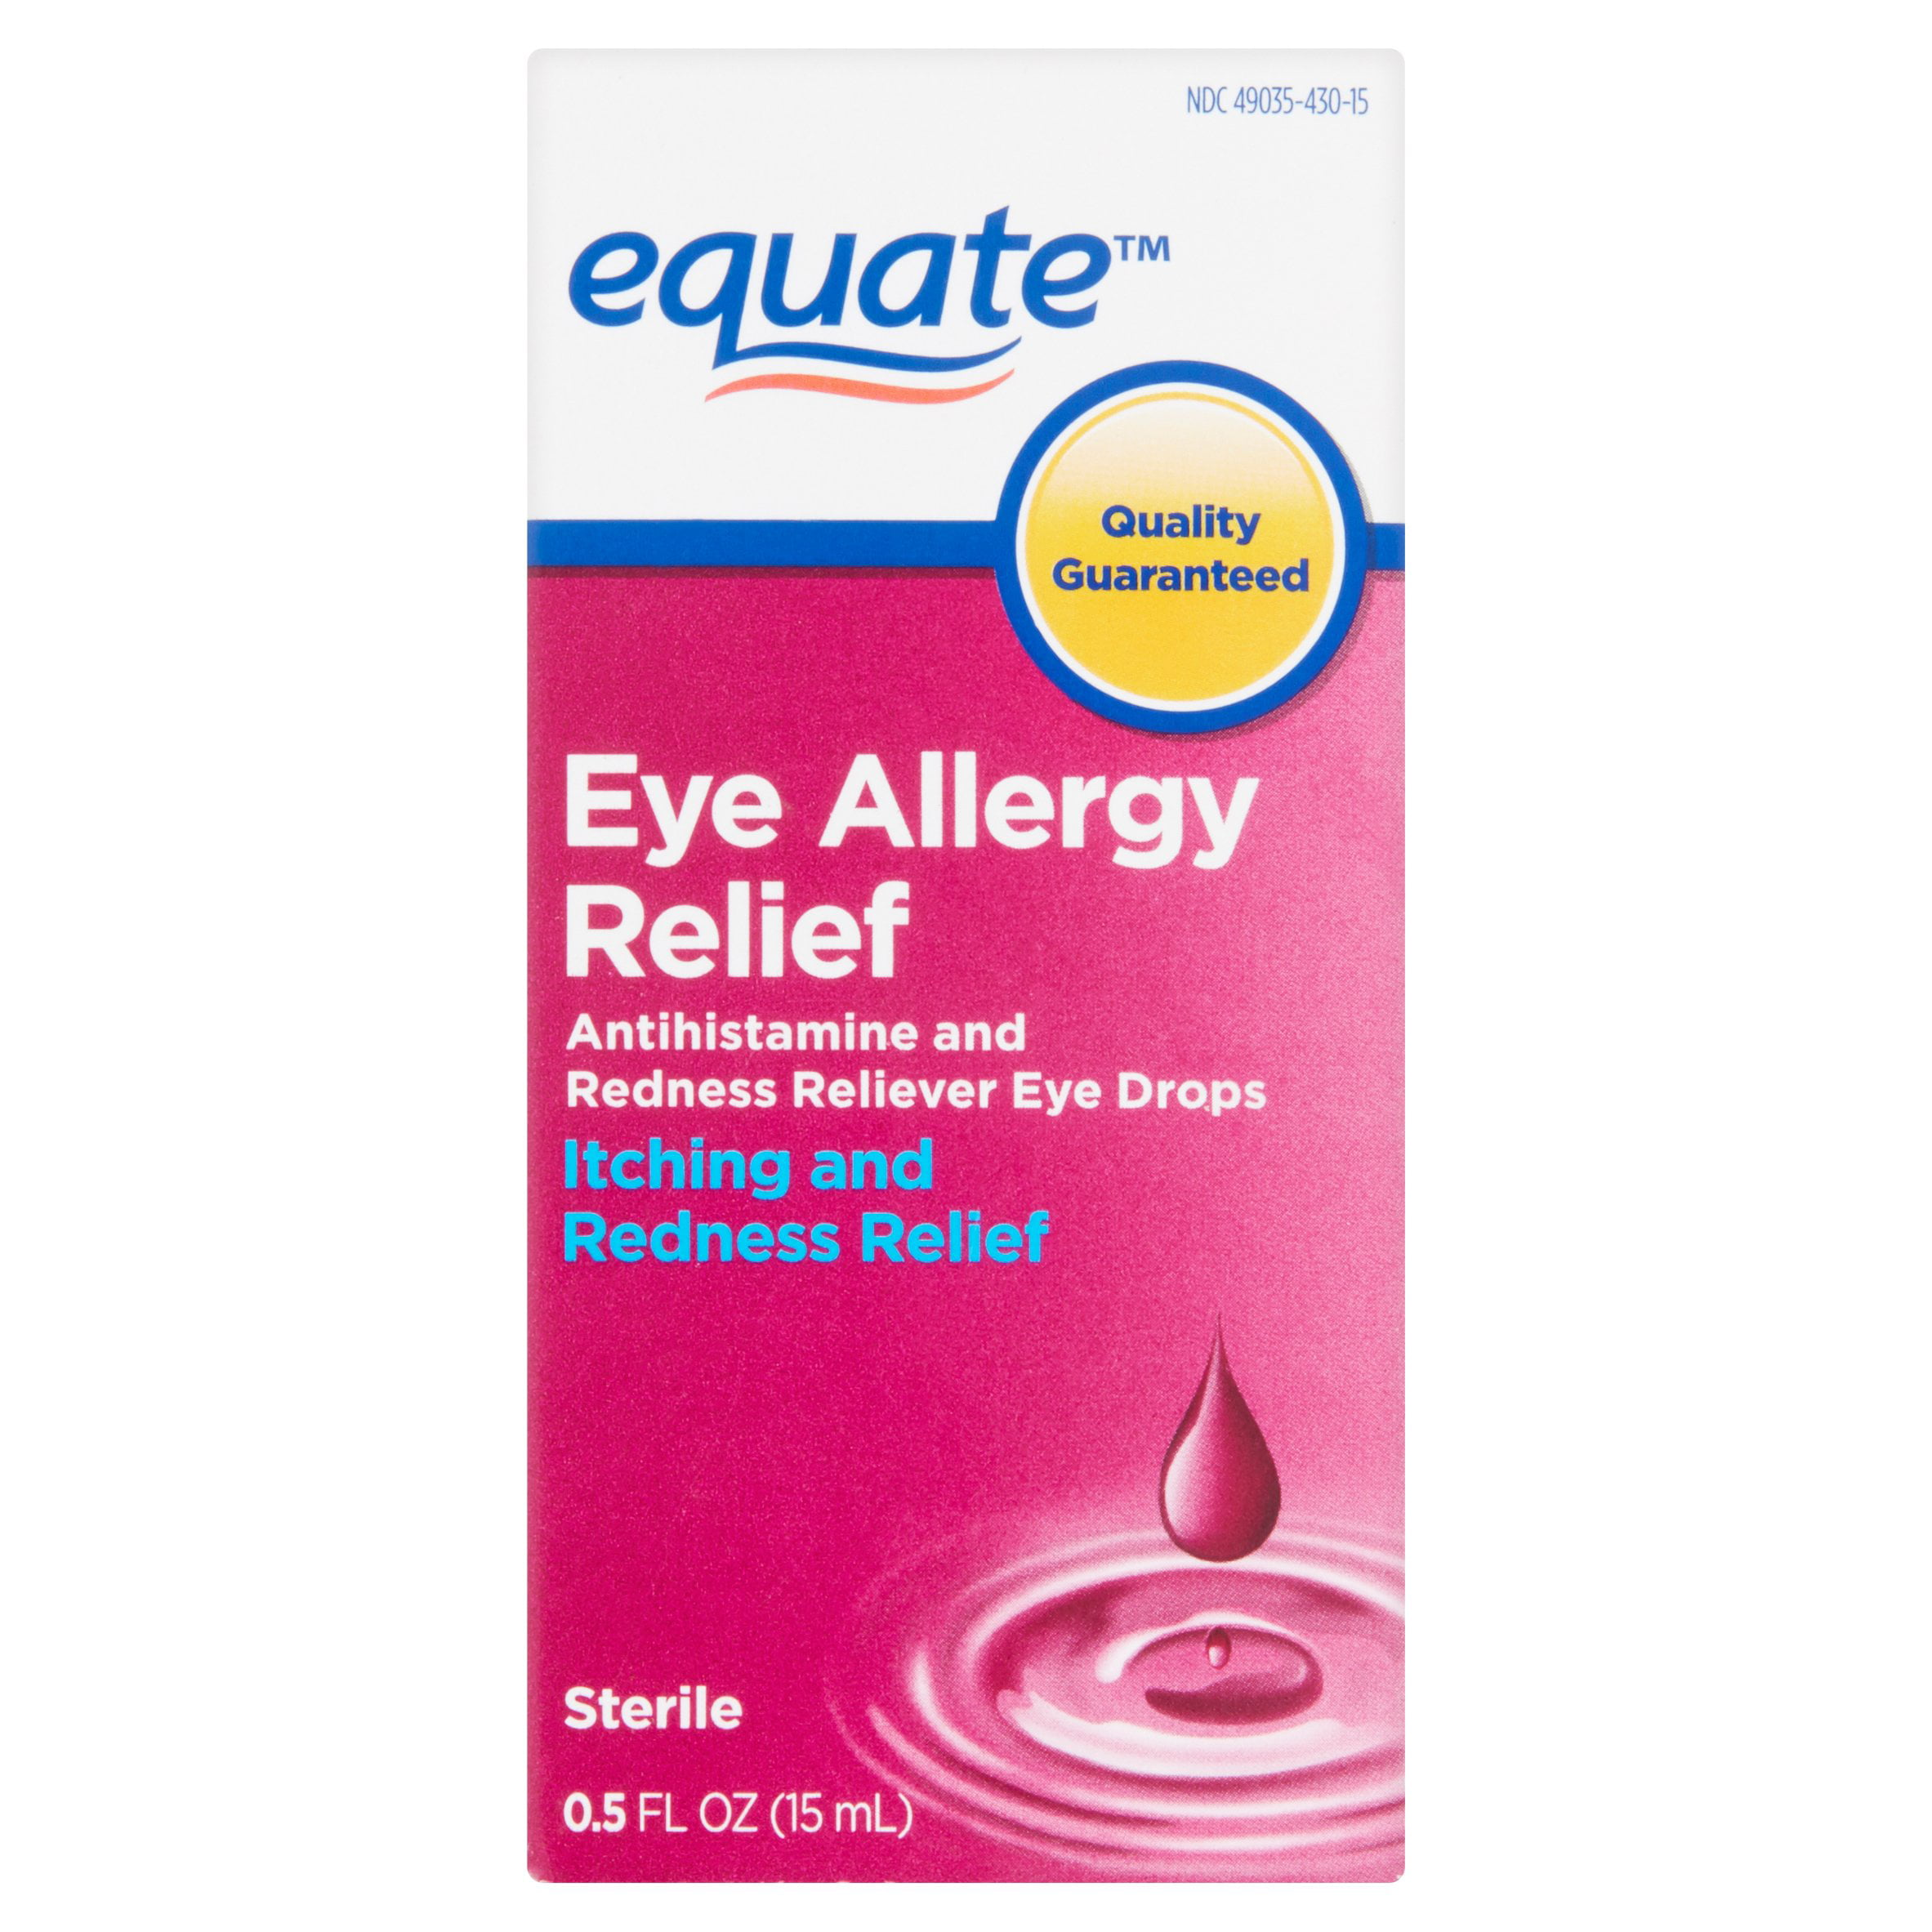 Eye drops for allergies: reviews. What eye drops are better for allergies? 26